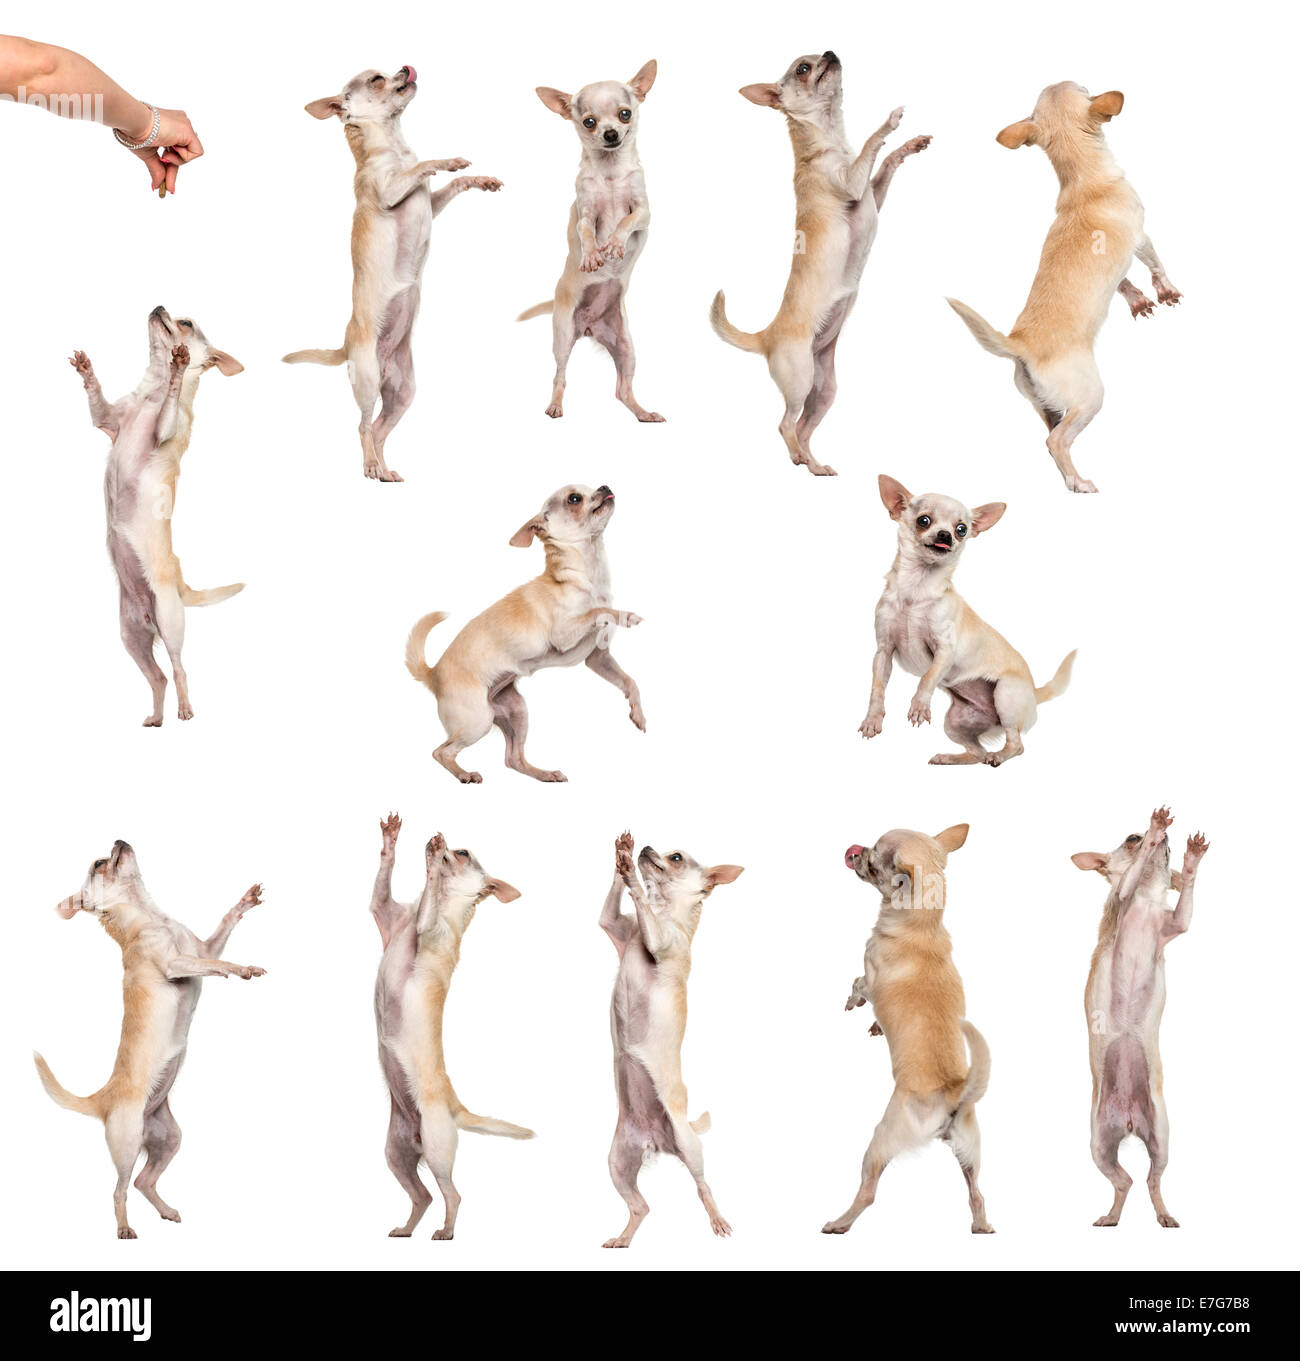 Collection of 12 Chihuahuas in different positions against white background - Stock Image